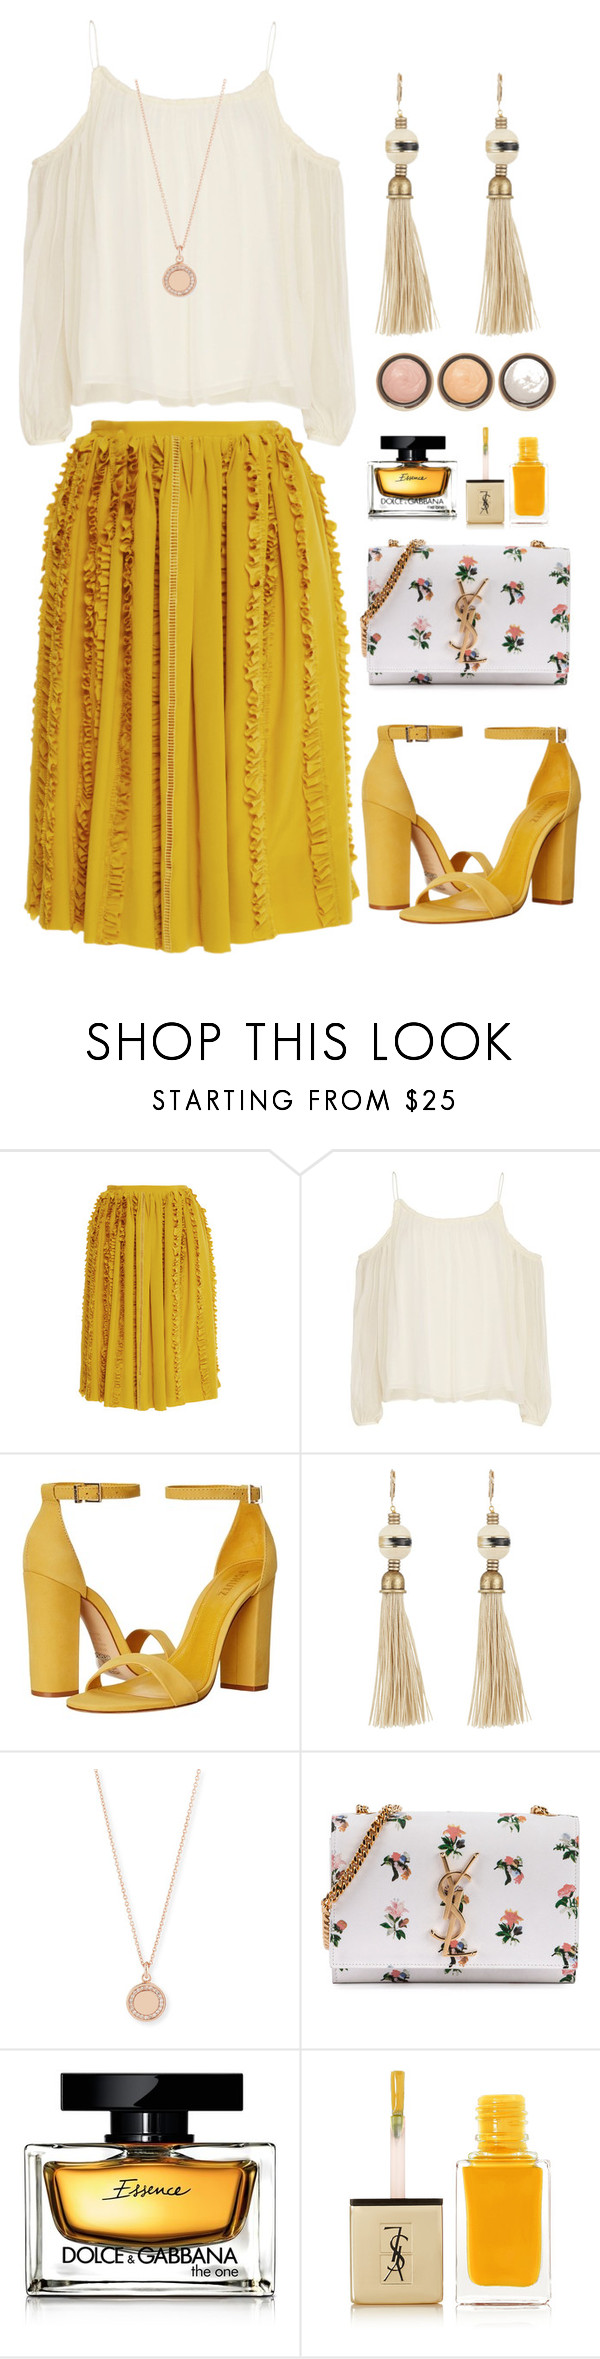 """""""Без названия #167"""" by annapogosyan ❤ liked on Polyvore featuring Rochas, Elizabeth and James, Schutz, Lanvin, Astley Clarke, Yves Saint Laurent, Dolce&Gabbana and By Terry"""